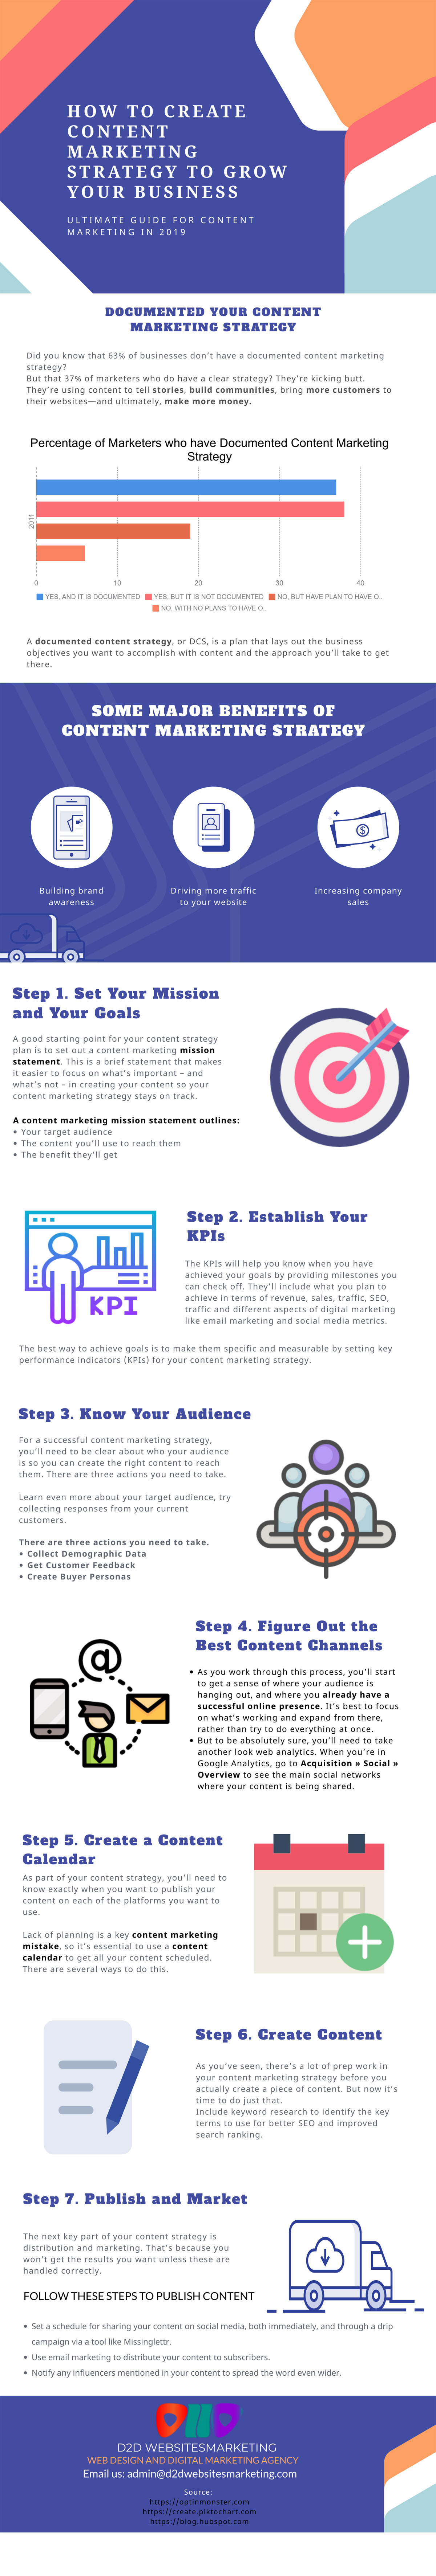 How to Create Content Marketing Strategies to Grow Your Business Online